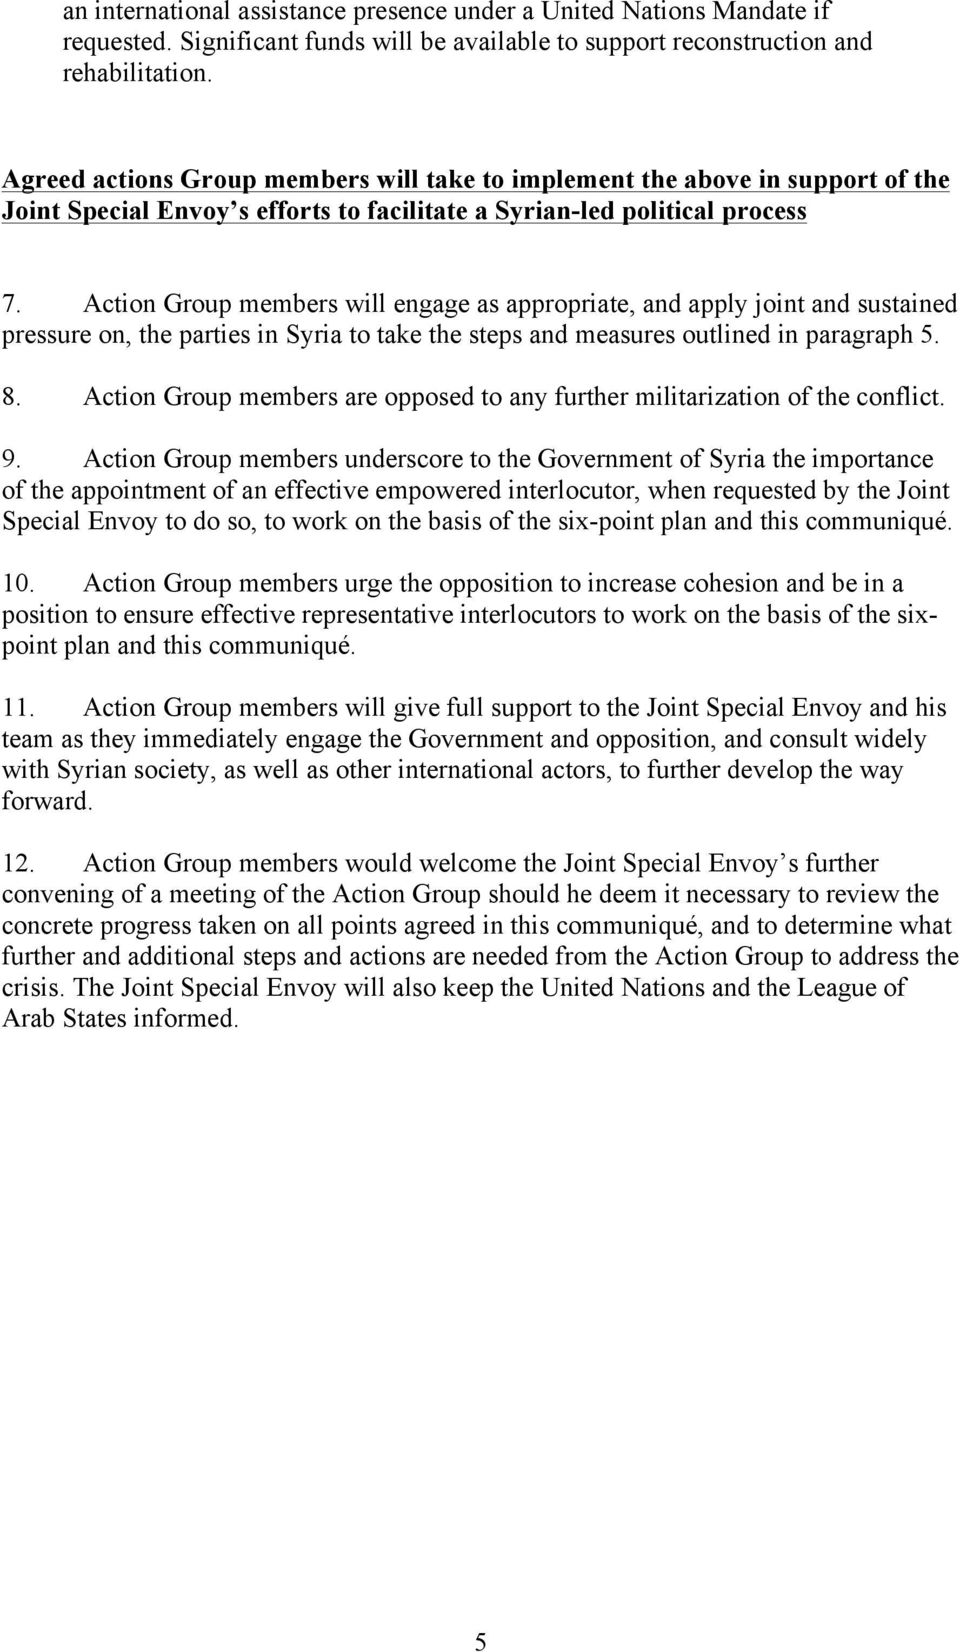 Action Group members will engage as appropriate, and apply joint and sustained pressure on, the parties in Syria to take the steps and measures outlined in paragraph 5. 8.